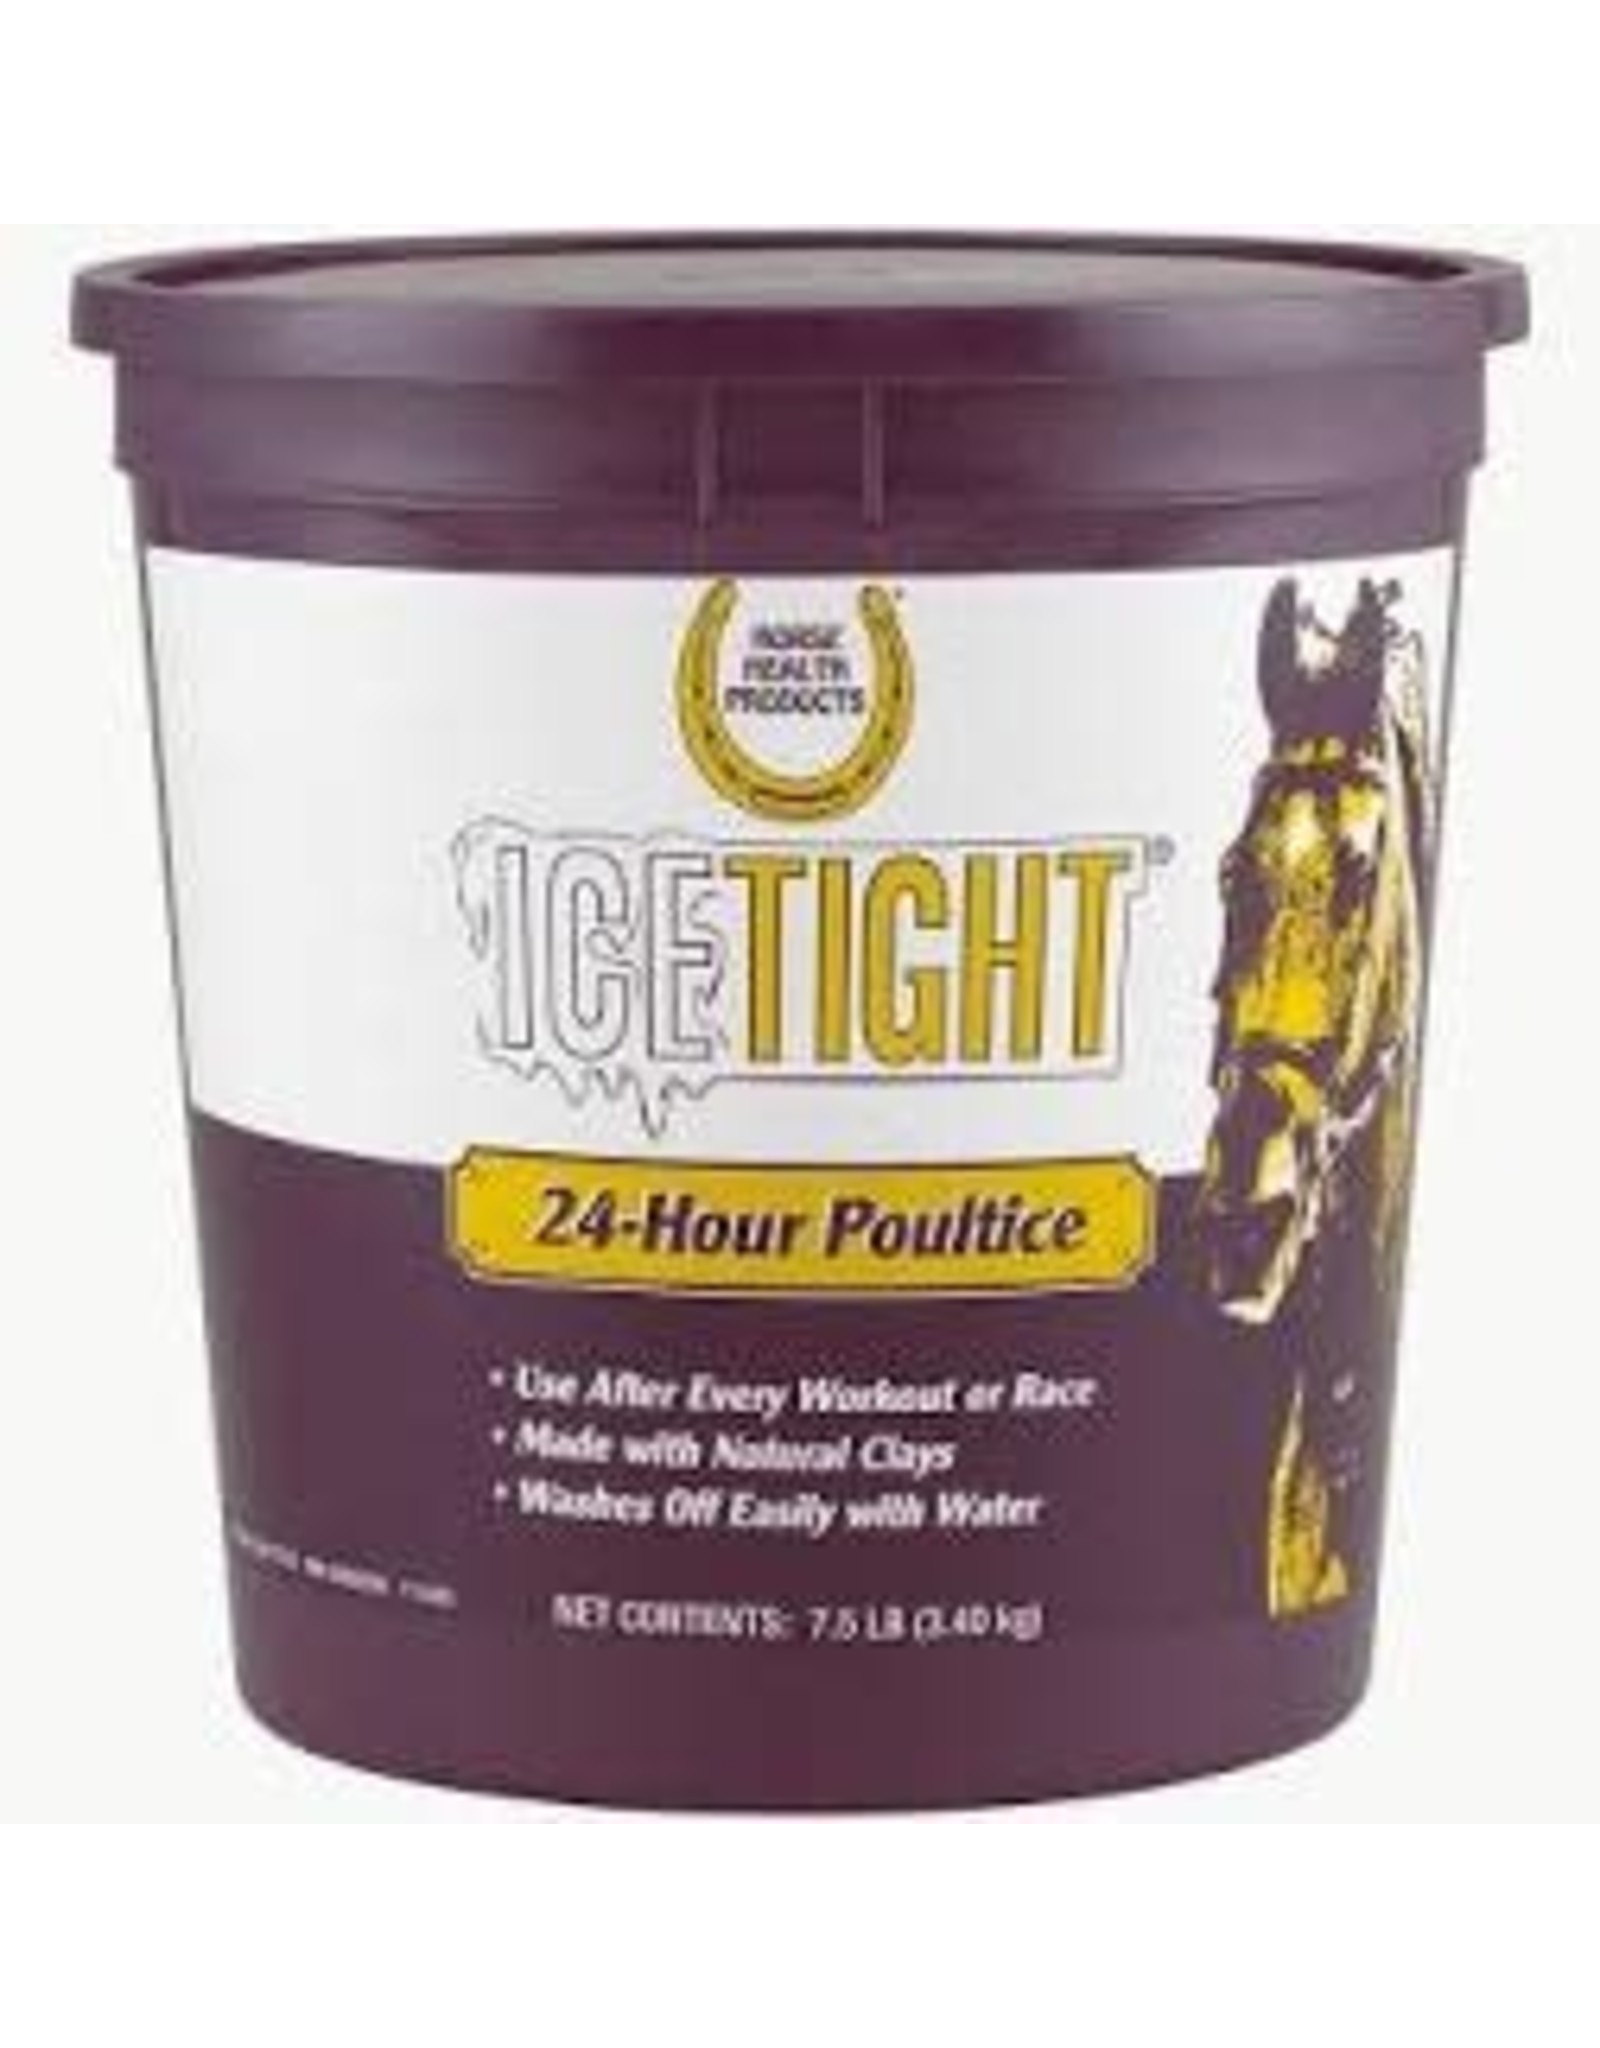 Ice Tight 24 Hour Poultice